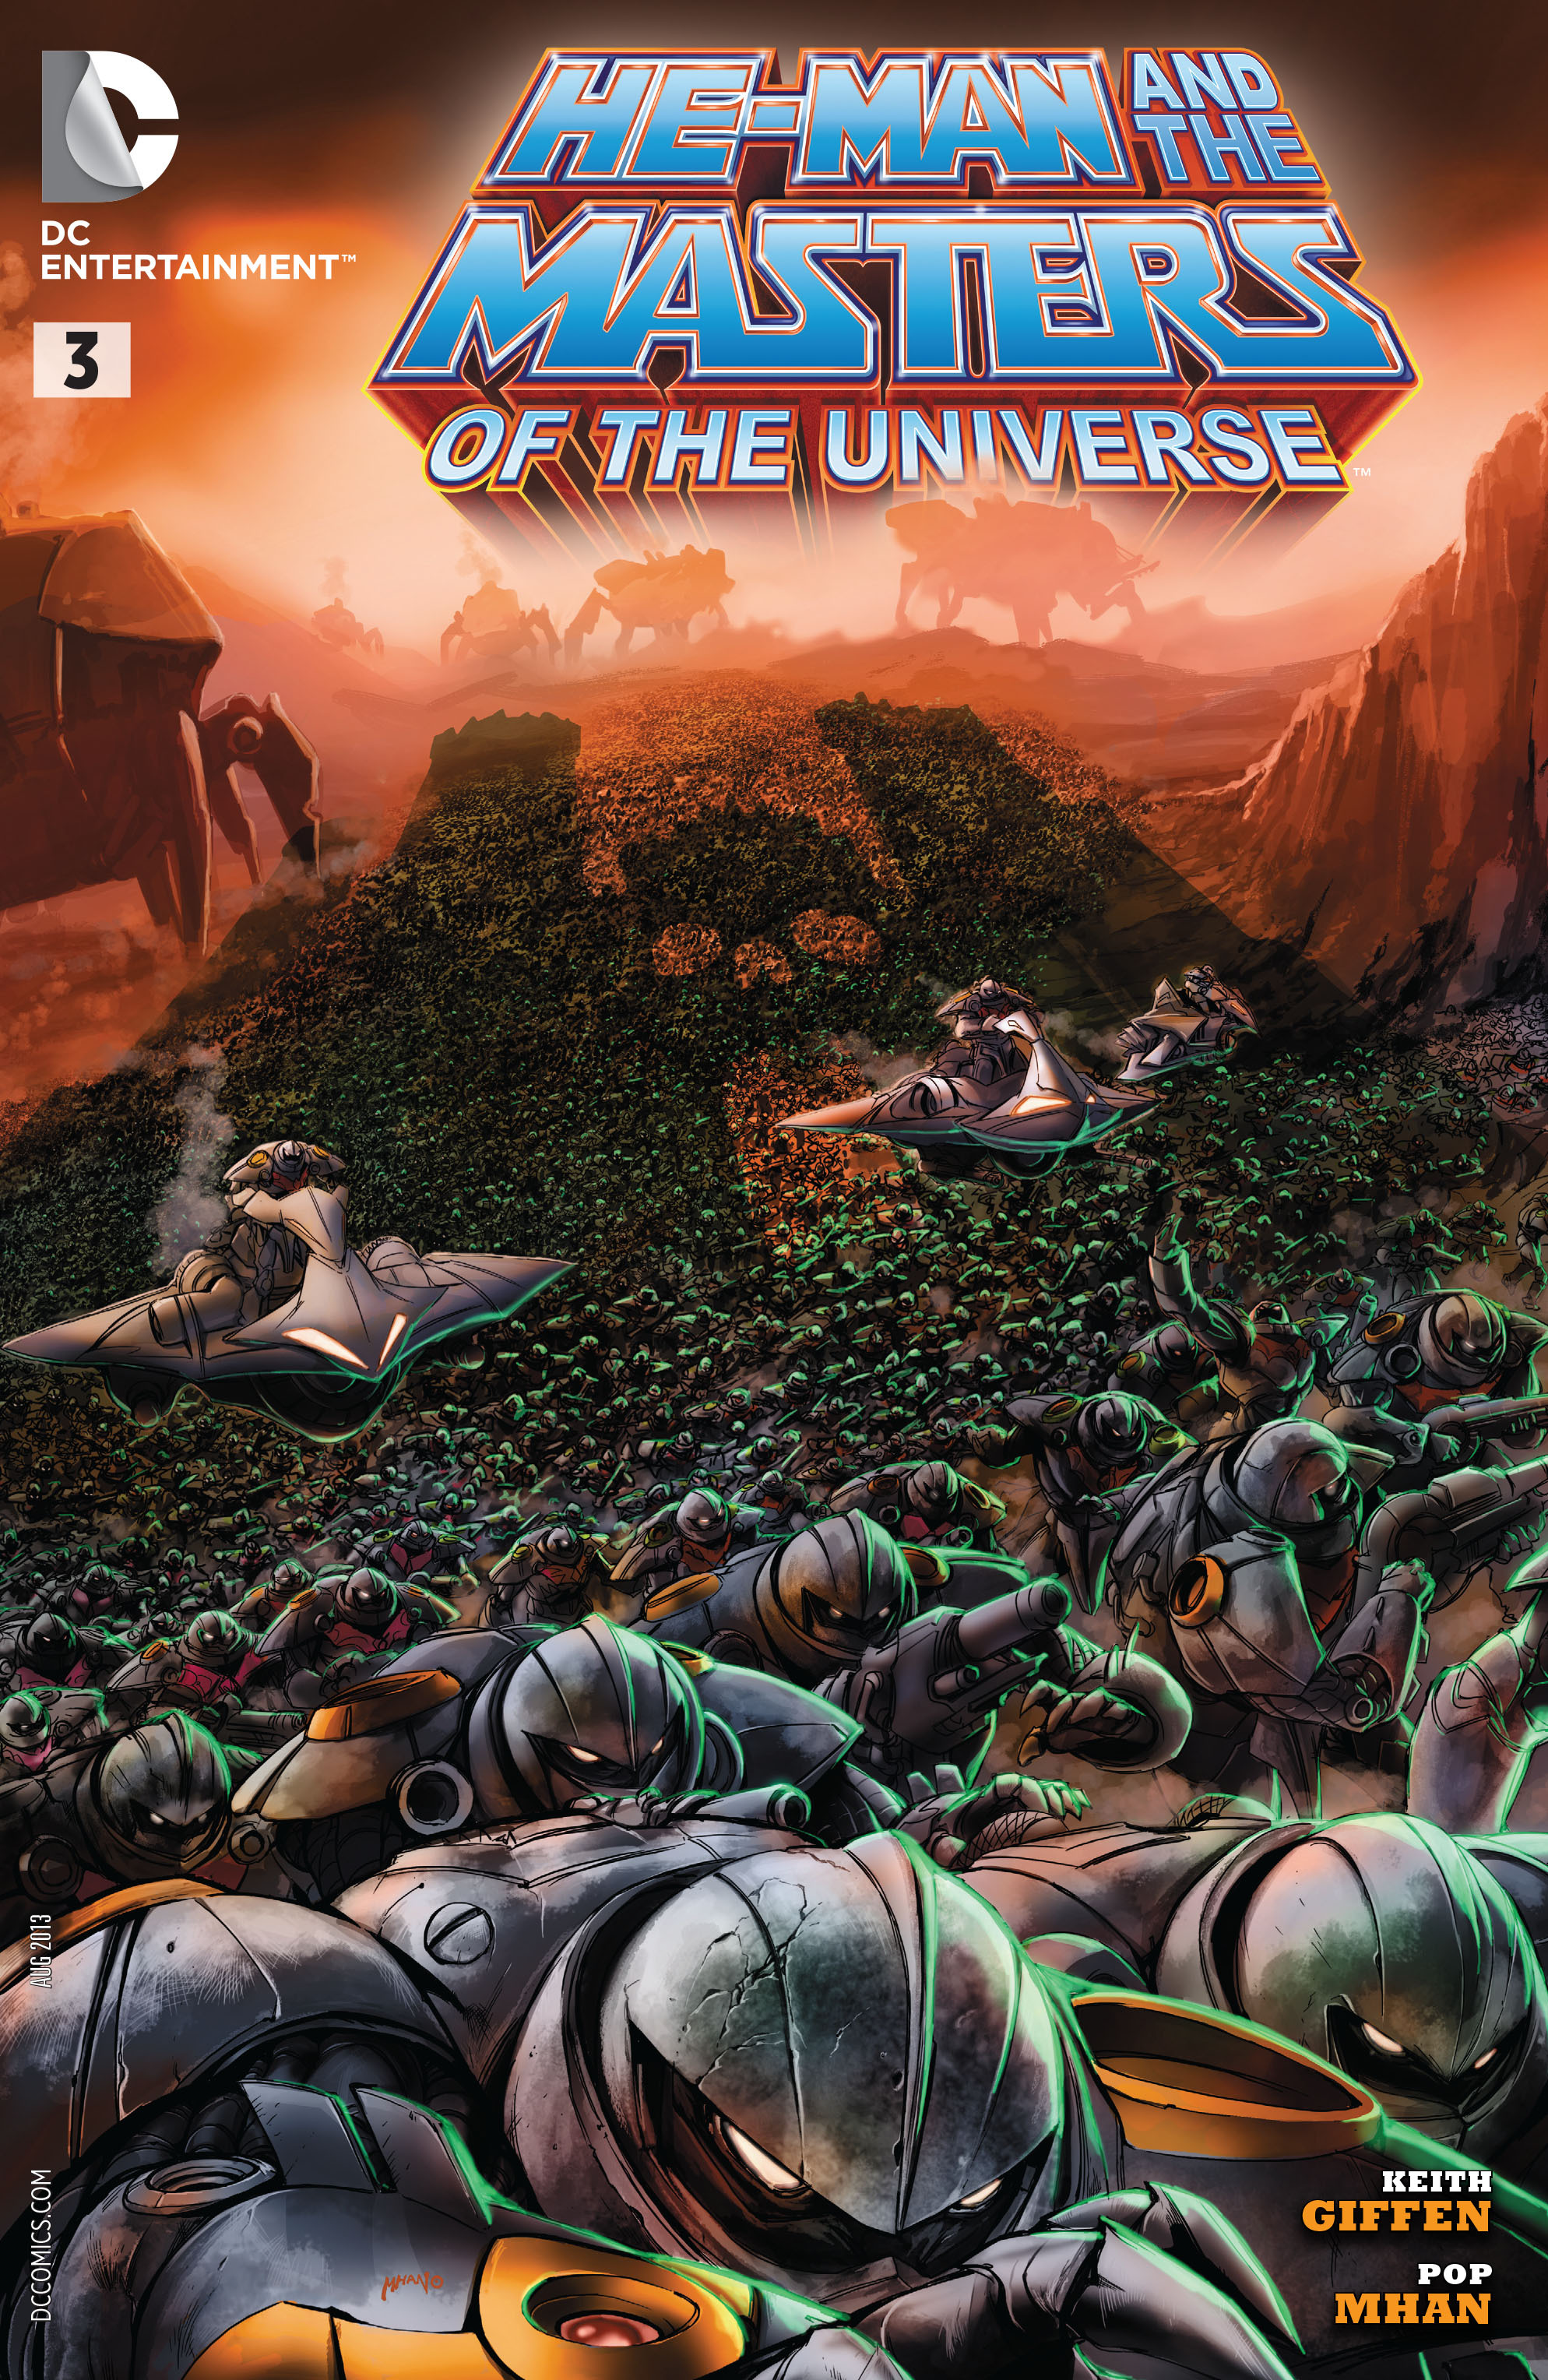 http://img3.wikia.nocookie.net/__cb20130703205150/marvel_dc/images/6/6b/He-Man_and_the_Masters_of_the_Universe_Vol_2_3.jpg